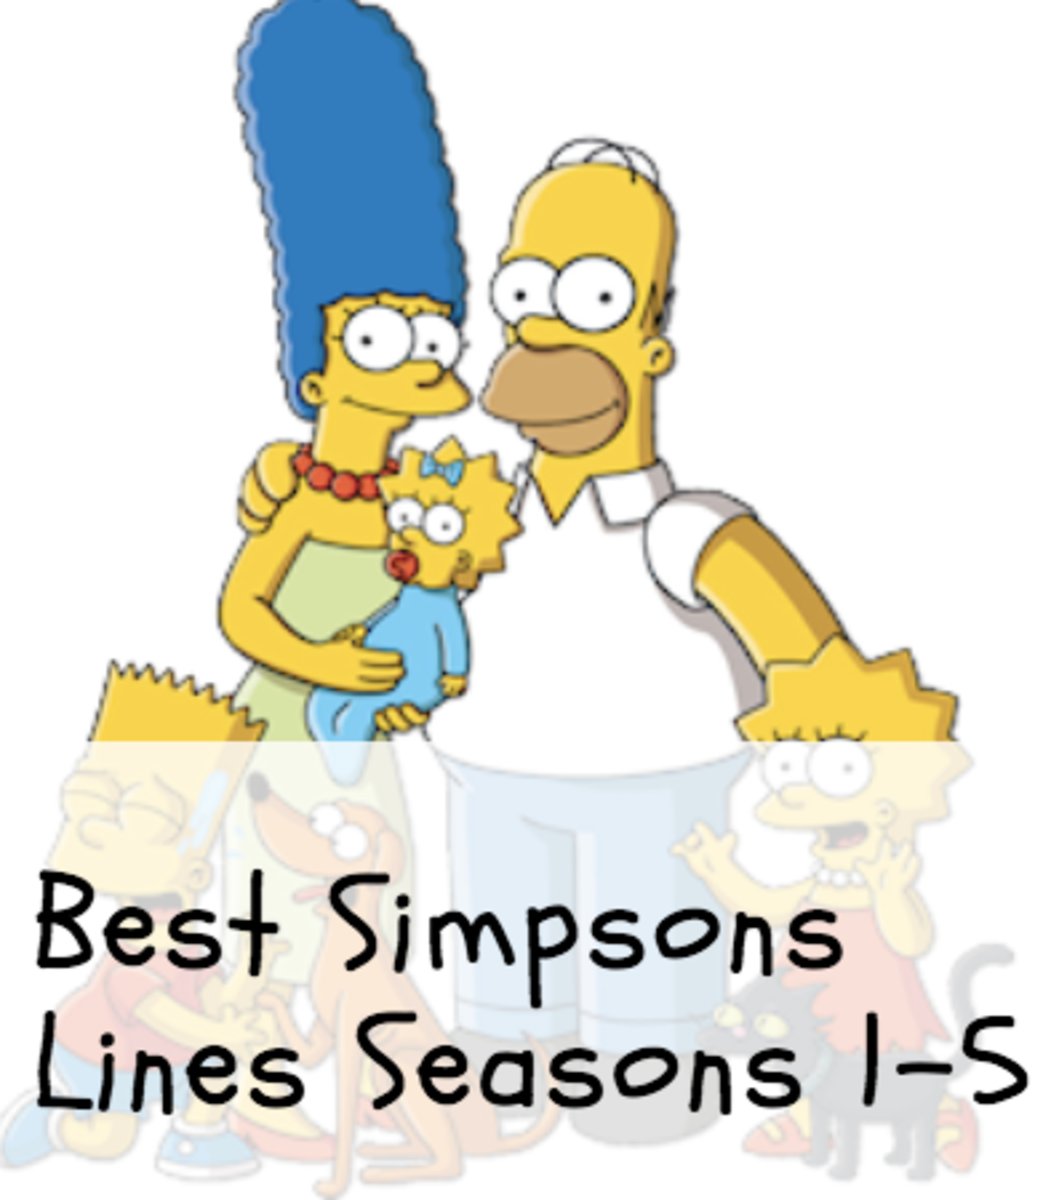 """Read the best """"Simpsons"""" lines from seasons 1-5."""